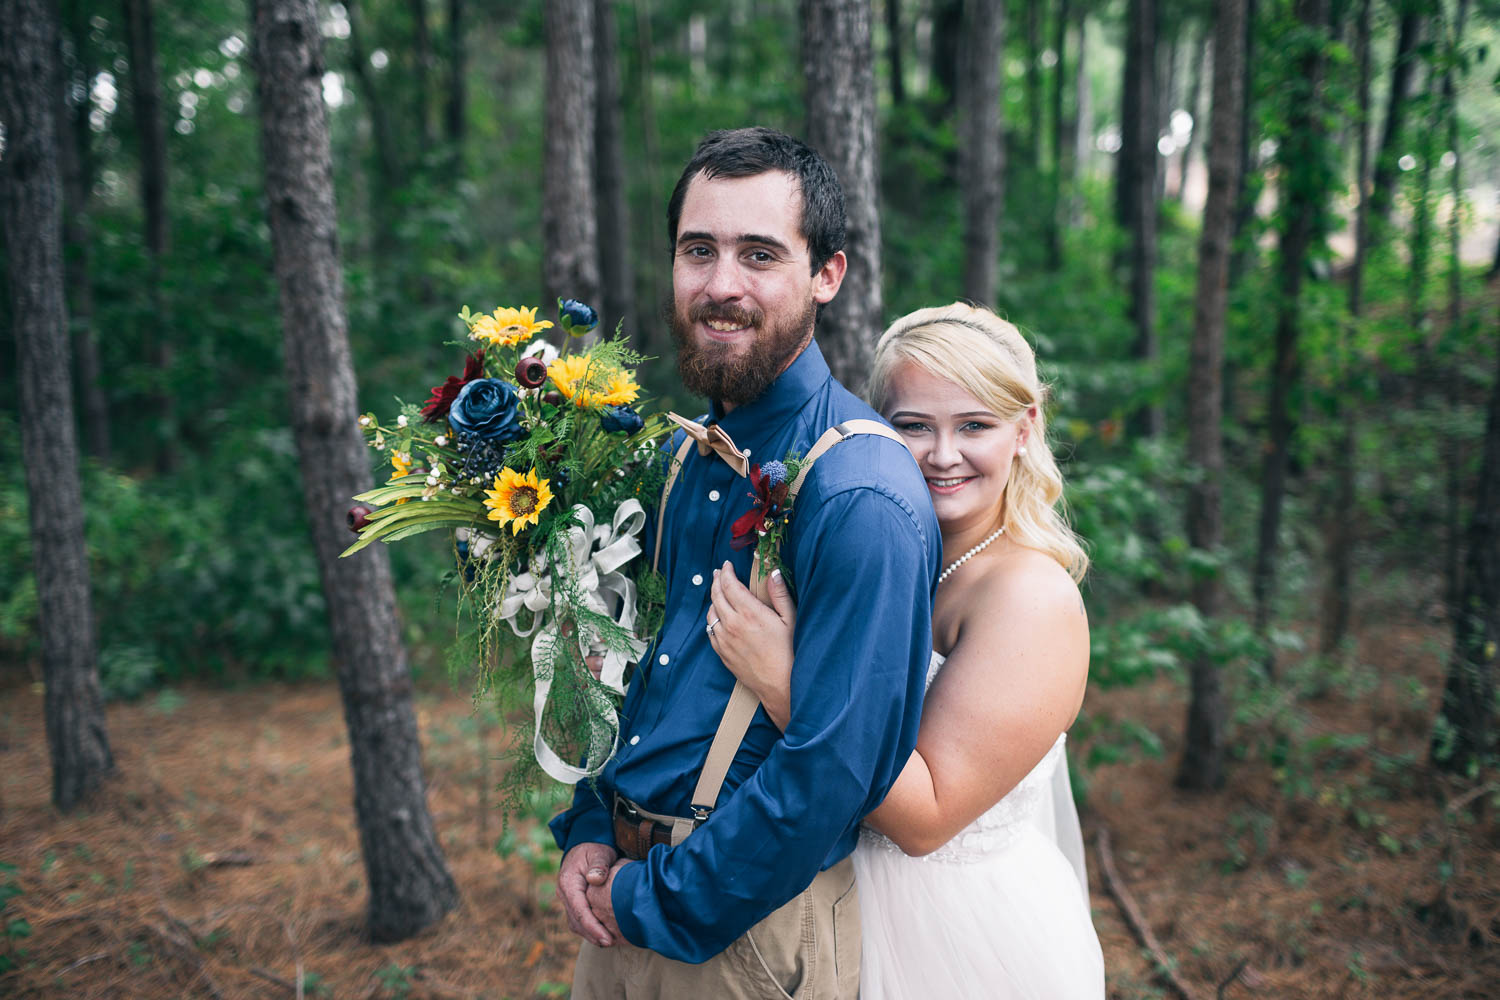 Oneonta, Alabama wedding photography by David A. Smith of DSmithImages Wedding Photography, Portraits, and Events in the Birmingham, Alabama area